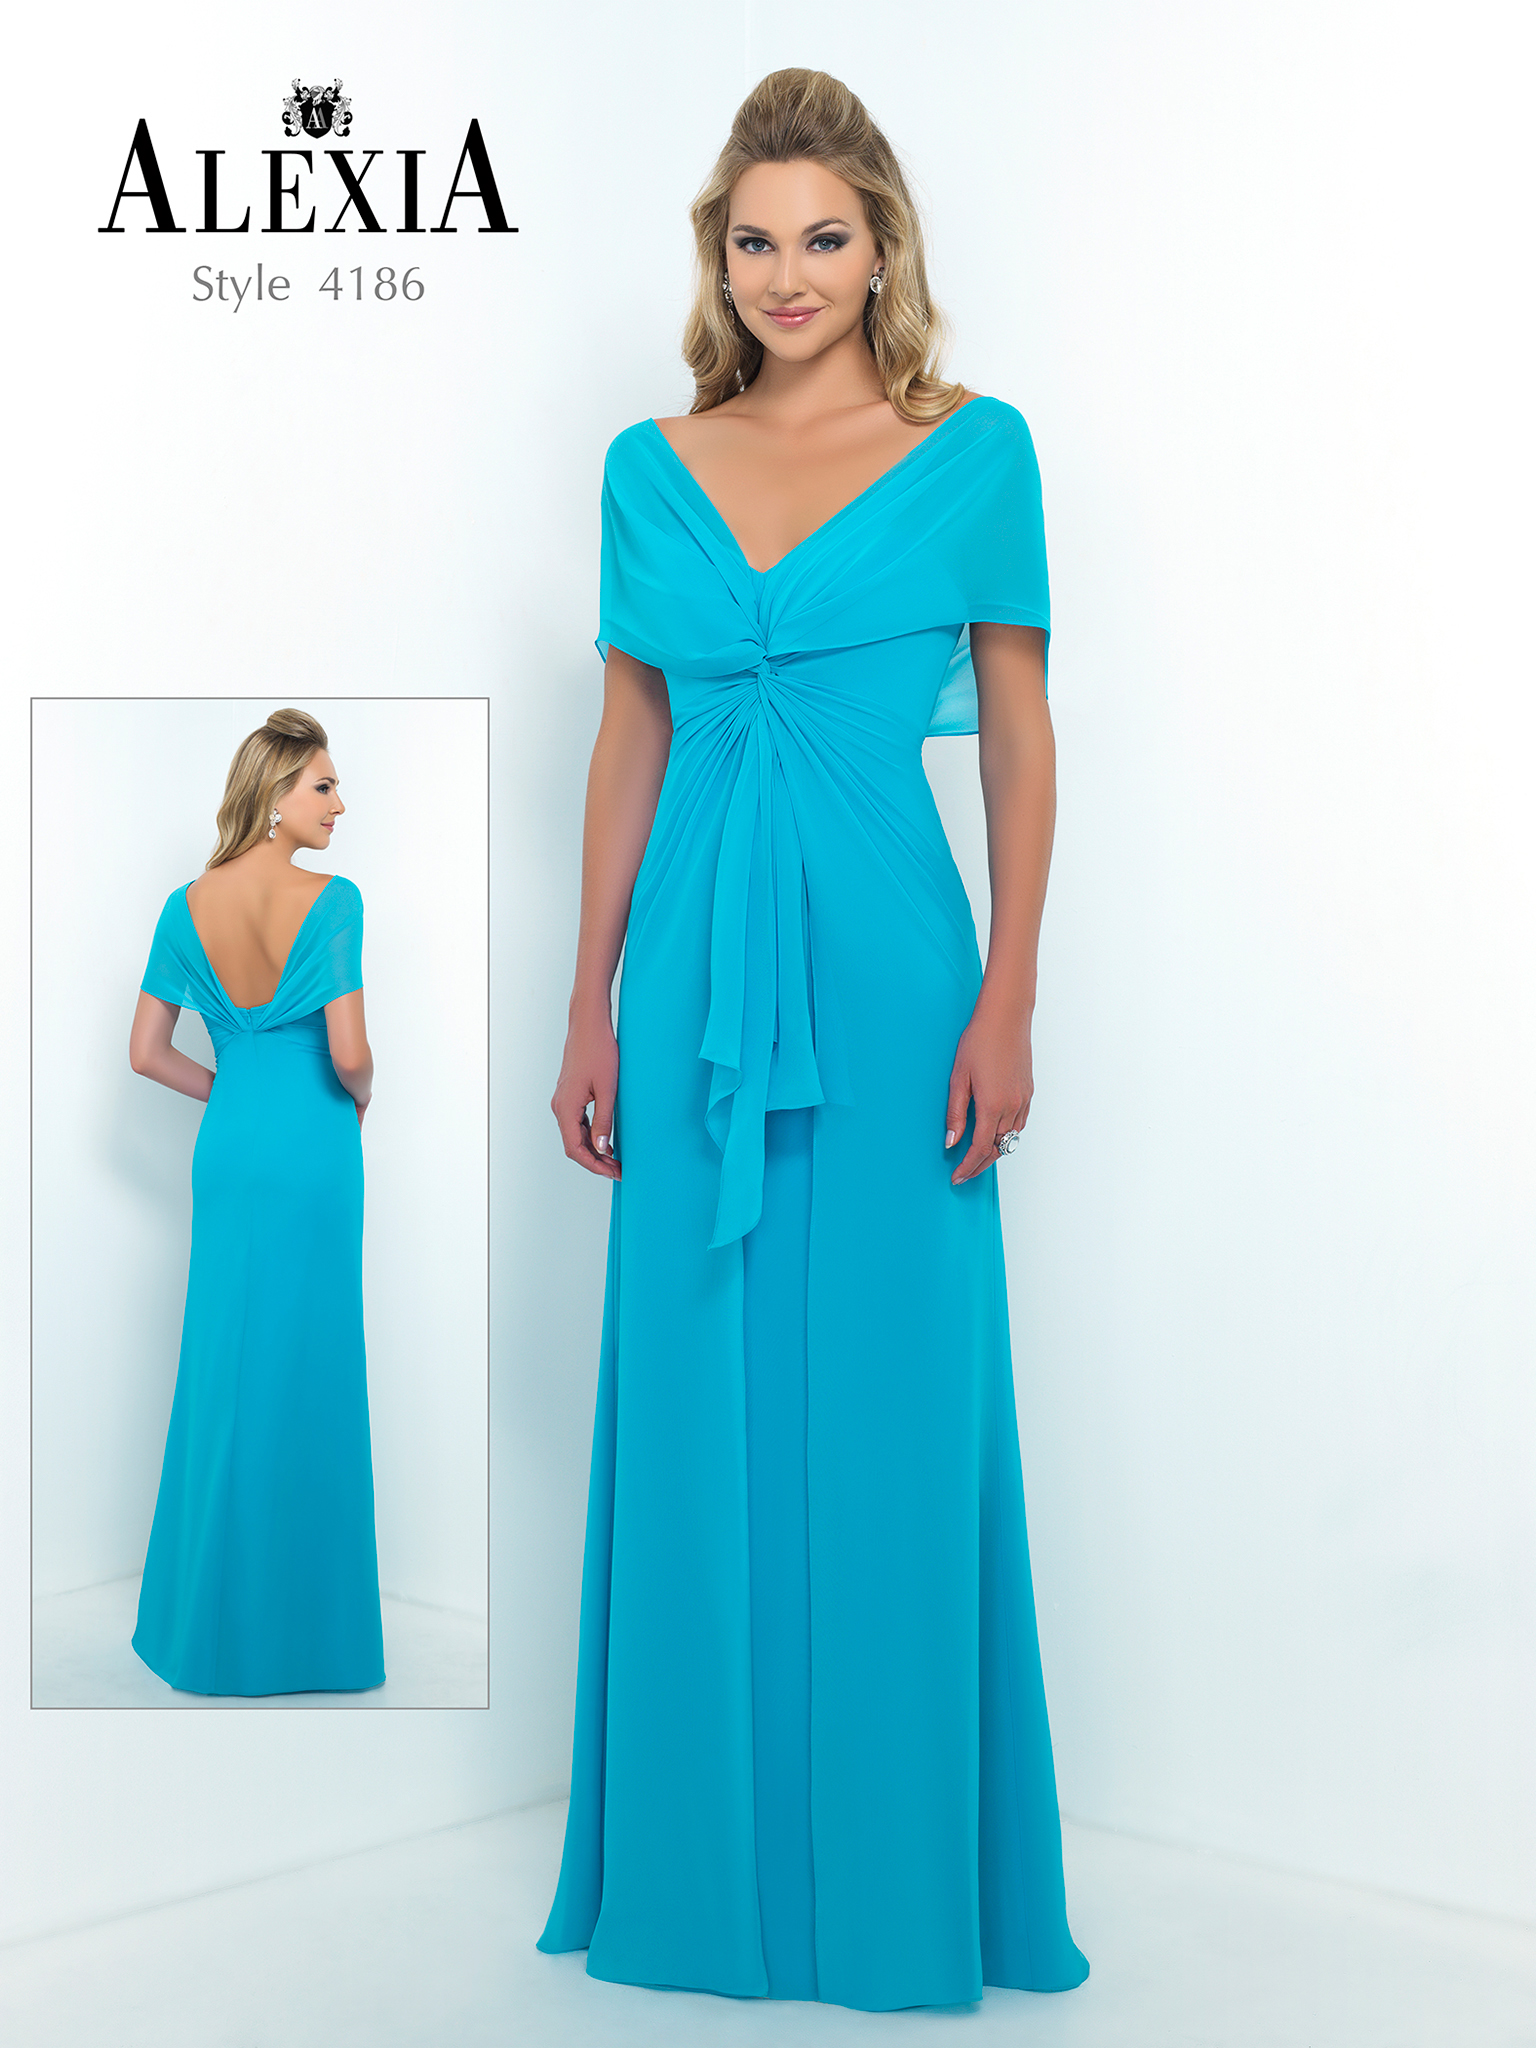 3044eb7cc39 Five Bridesmaid dress trends for 2015 - The National Wedding Show